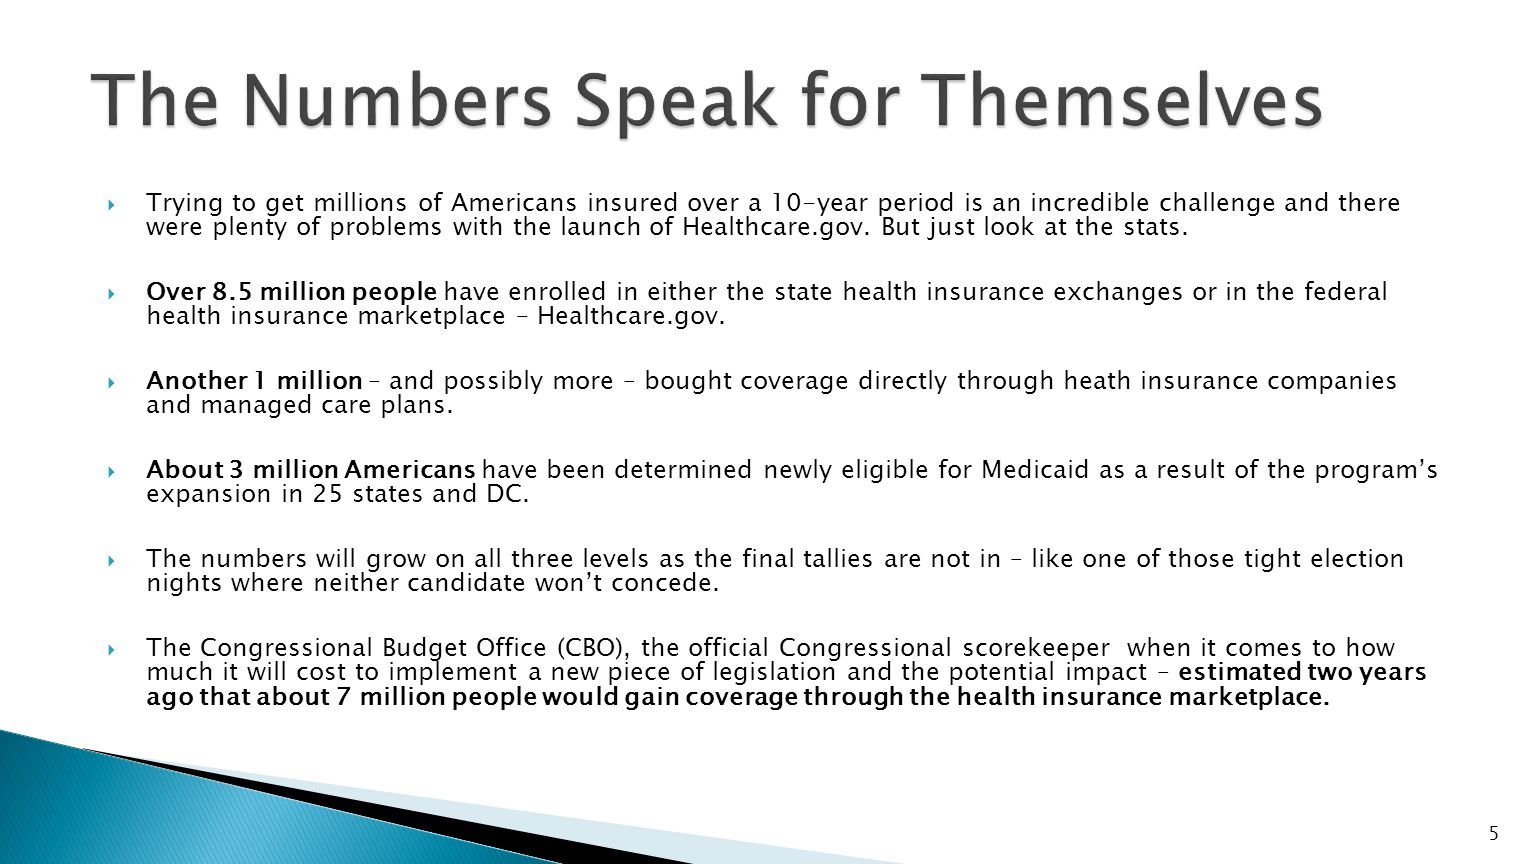  ACA requires the inclusion of essential health benefits (EHBs) that qualified health plans must offer to participate in state health insurance exchange & essentially provided through the Medicaid Expansion effort.